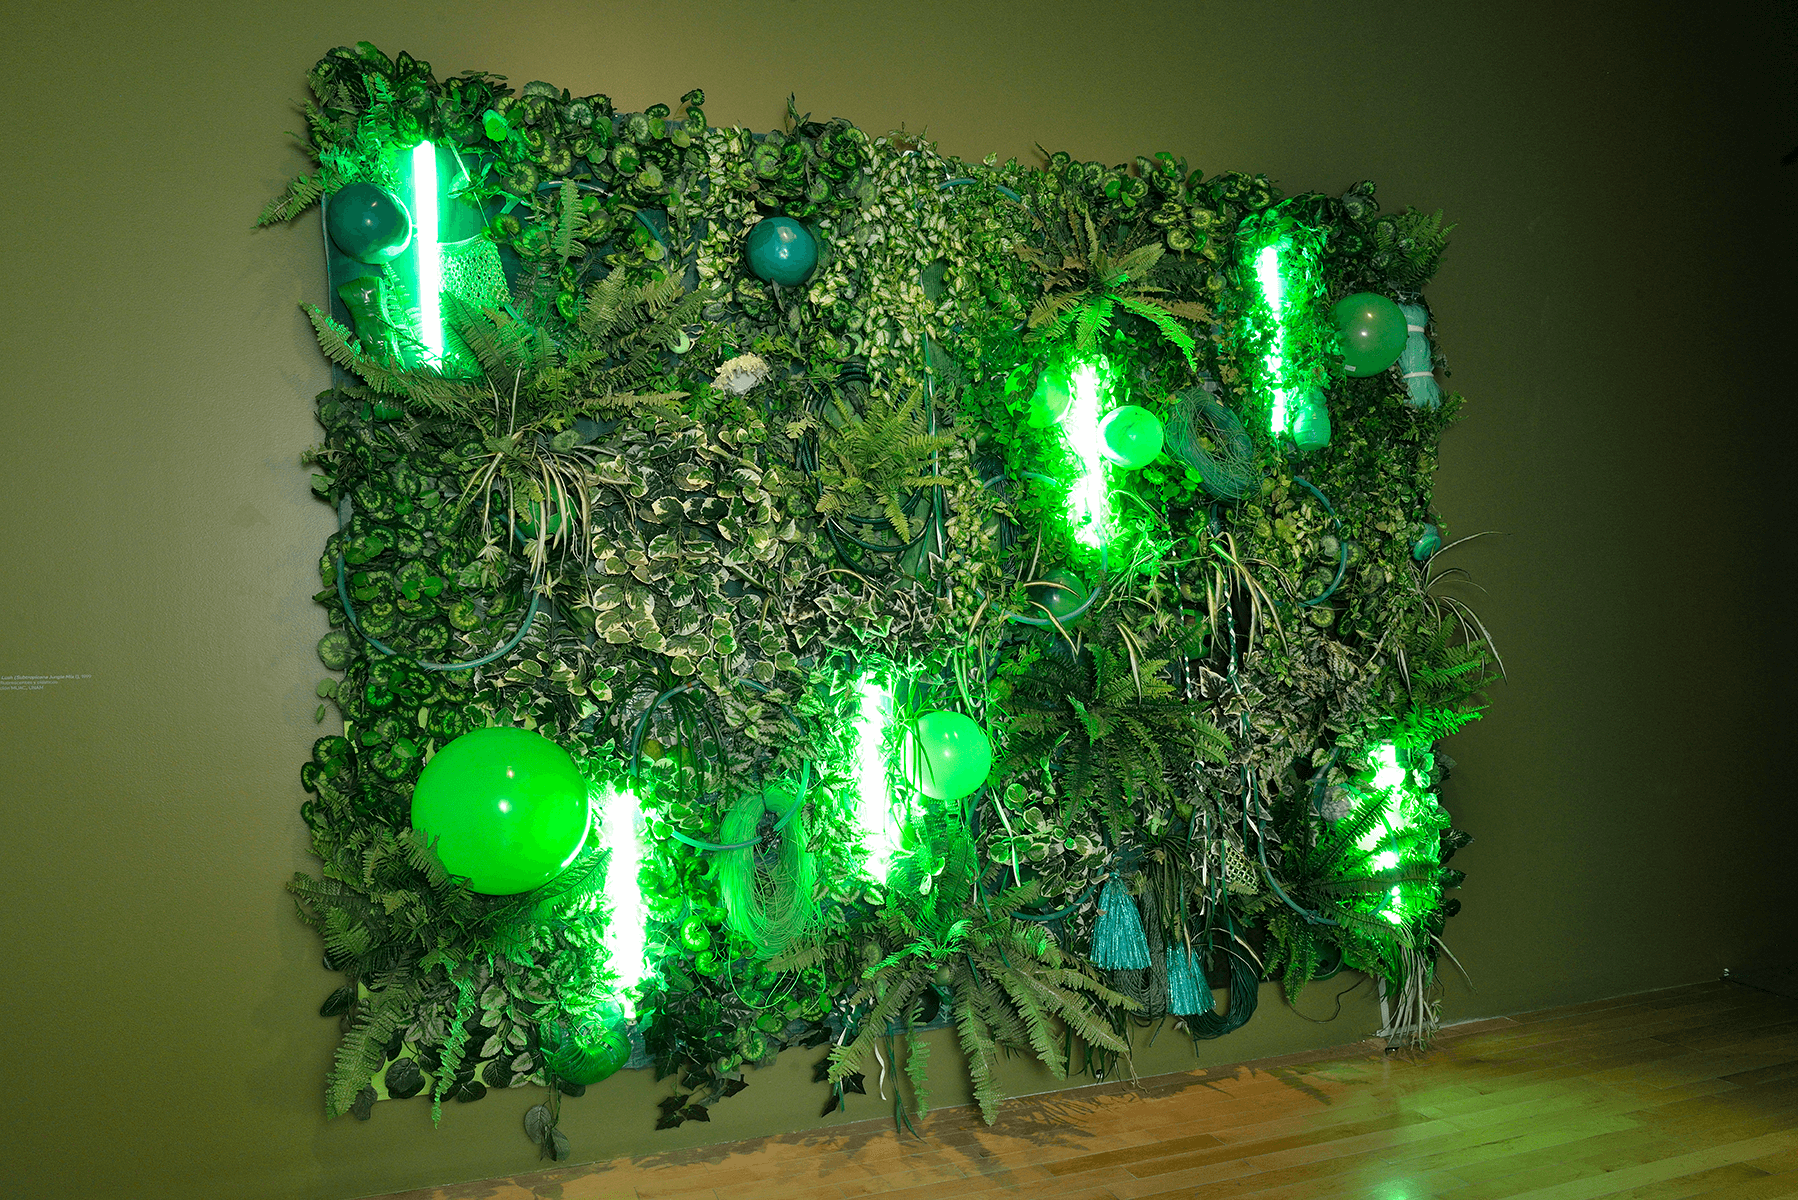 Green Lush (Subtropicana Jungle Mix I) | Melanie Smith. Farsa y artificio | Museo Amparo, Puebla